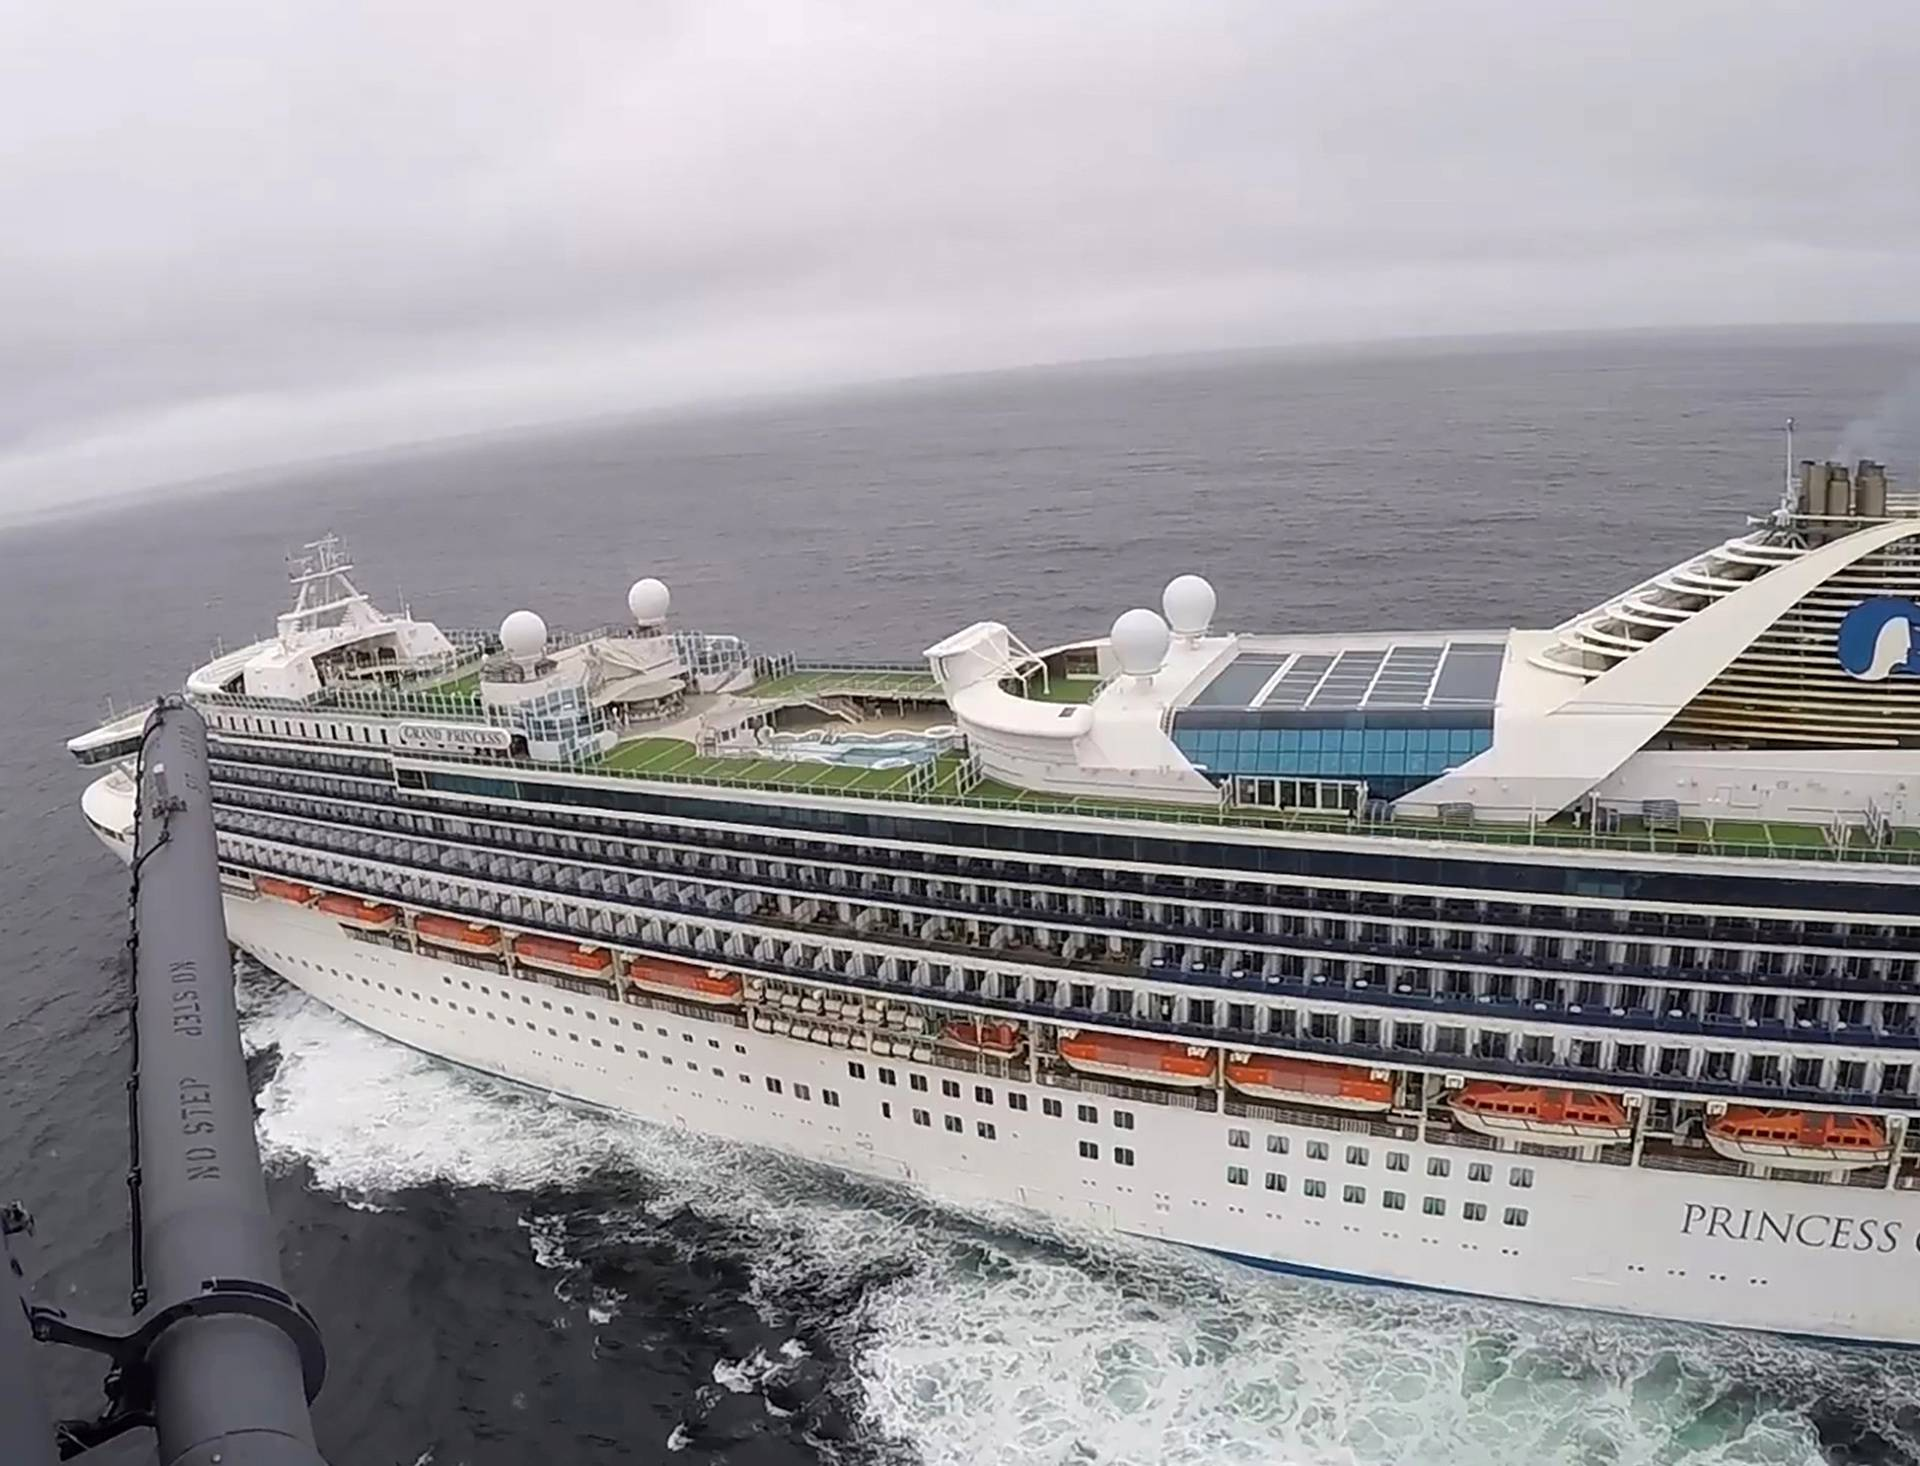 Grand Princess cruise ship circles off the coast of California